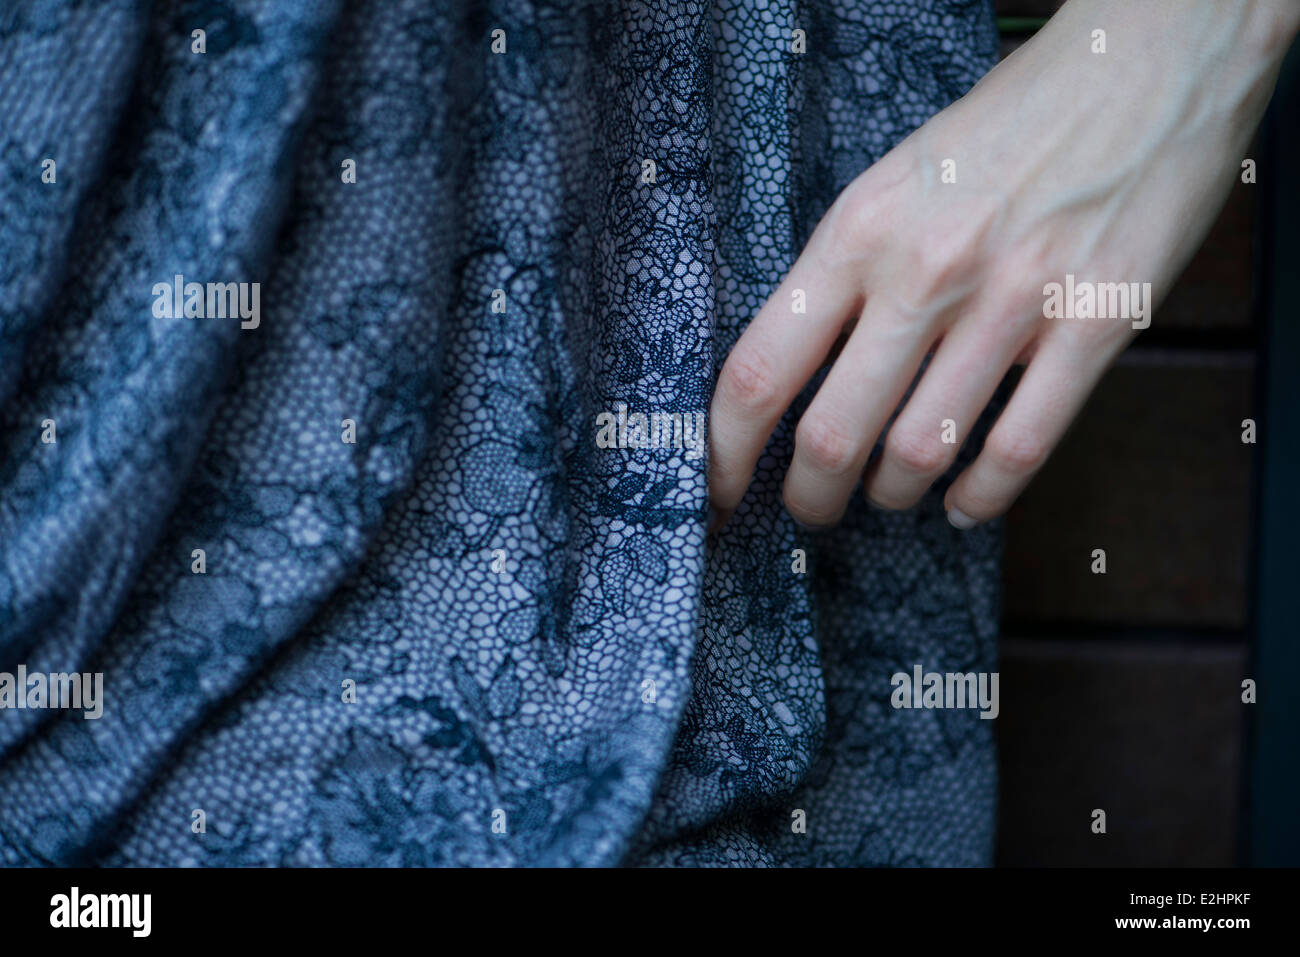 Close-up of woman's hand Photo Stock